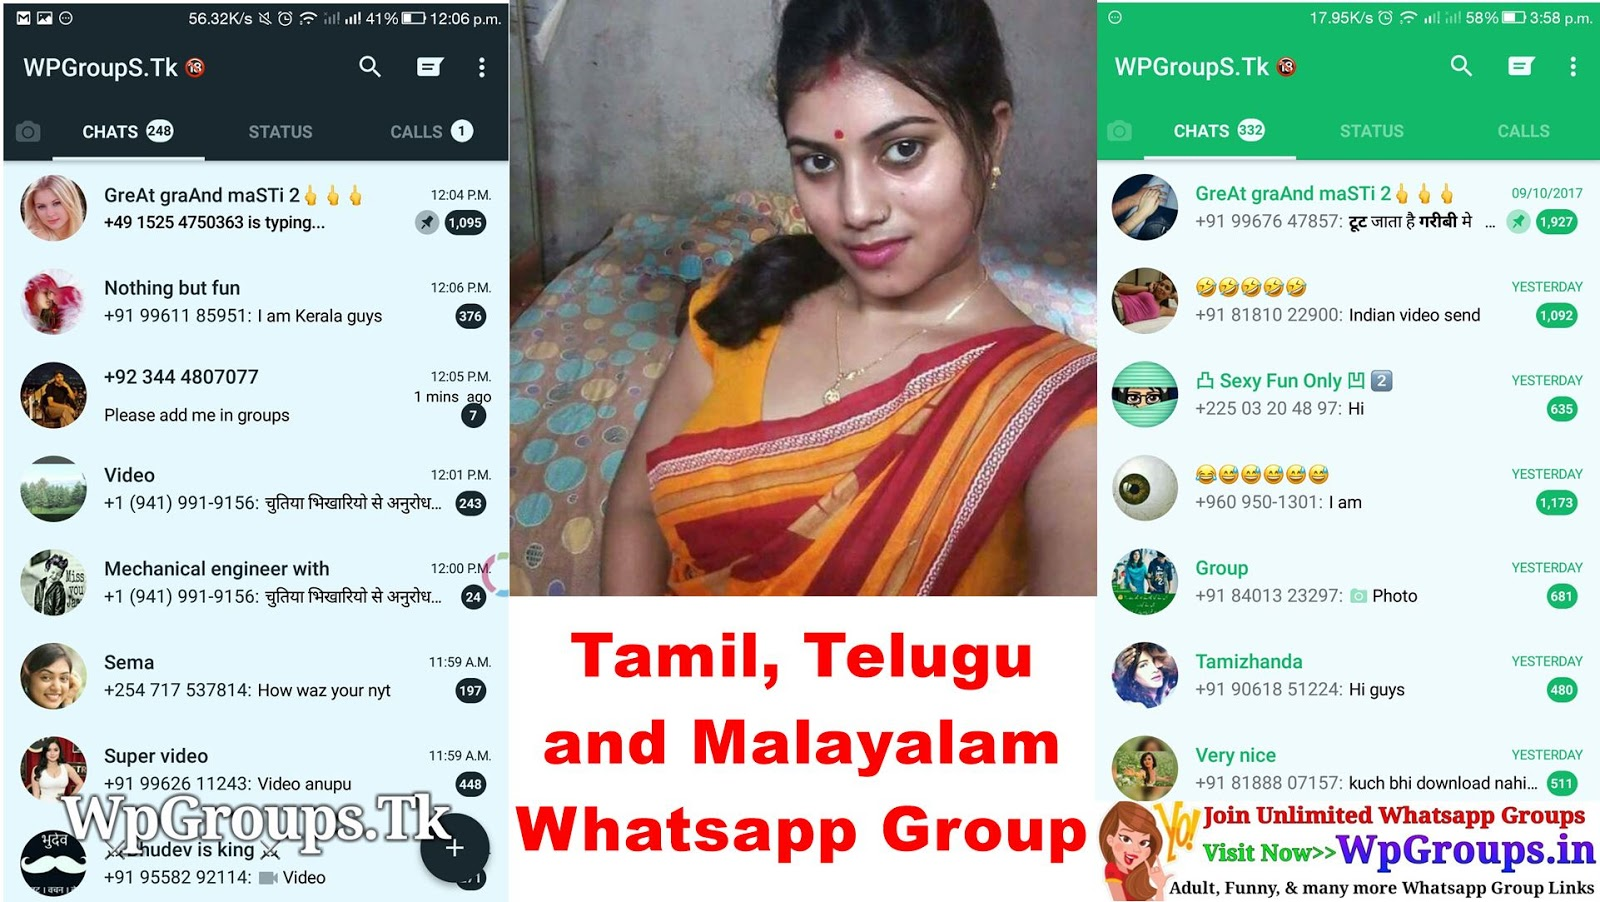 of tamil malayalam and telugu whatsapp group links many people searching lots of time for tamil and malayalam whatsapp group link so now i m here